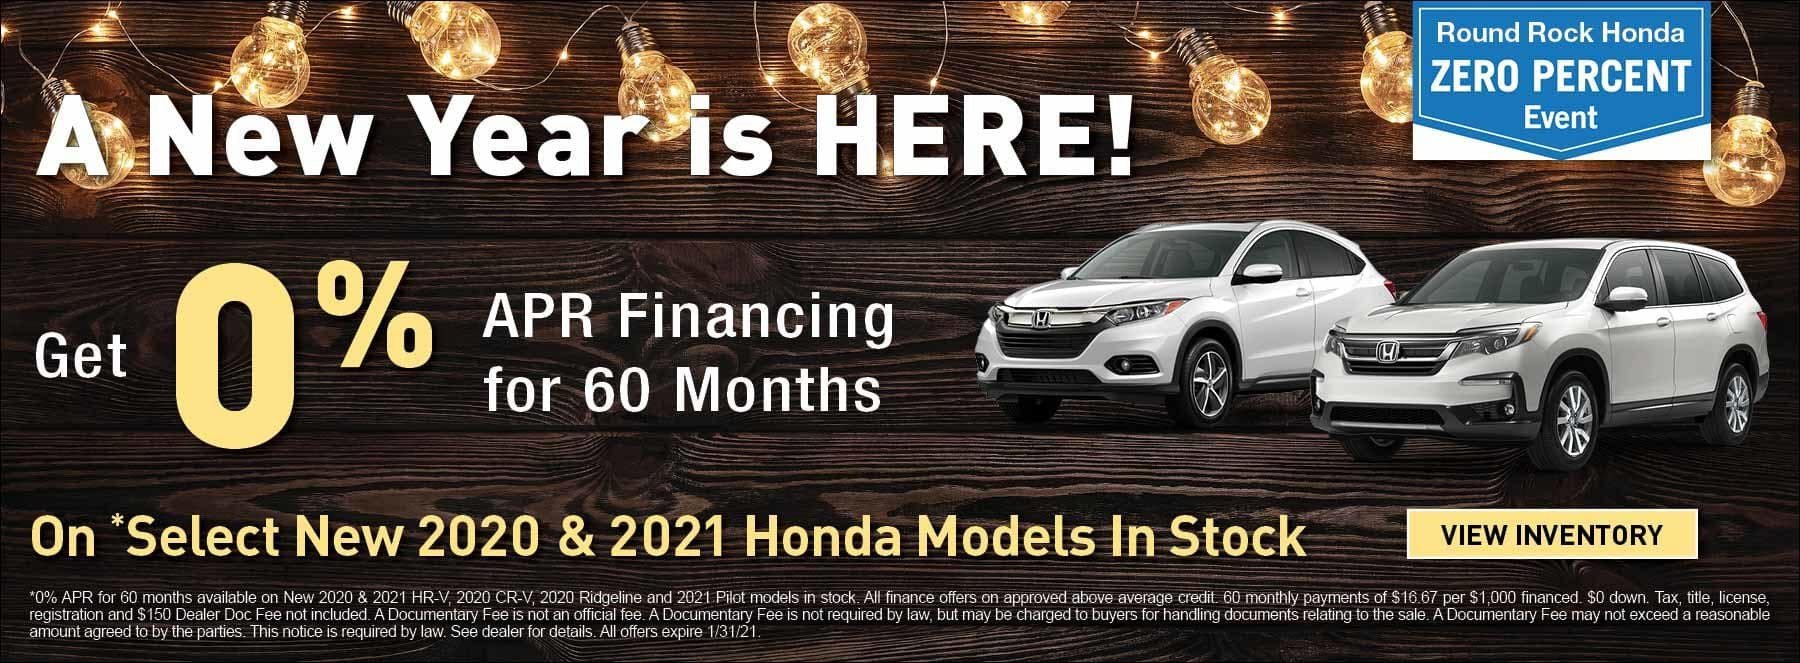 0 Percent APR Financing for 60 Months